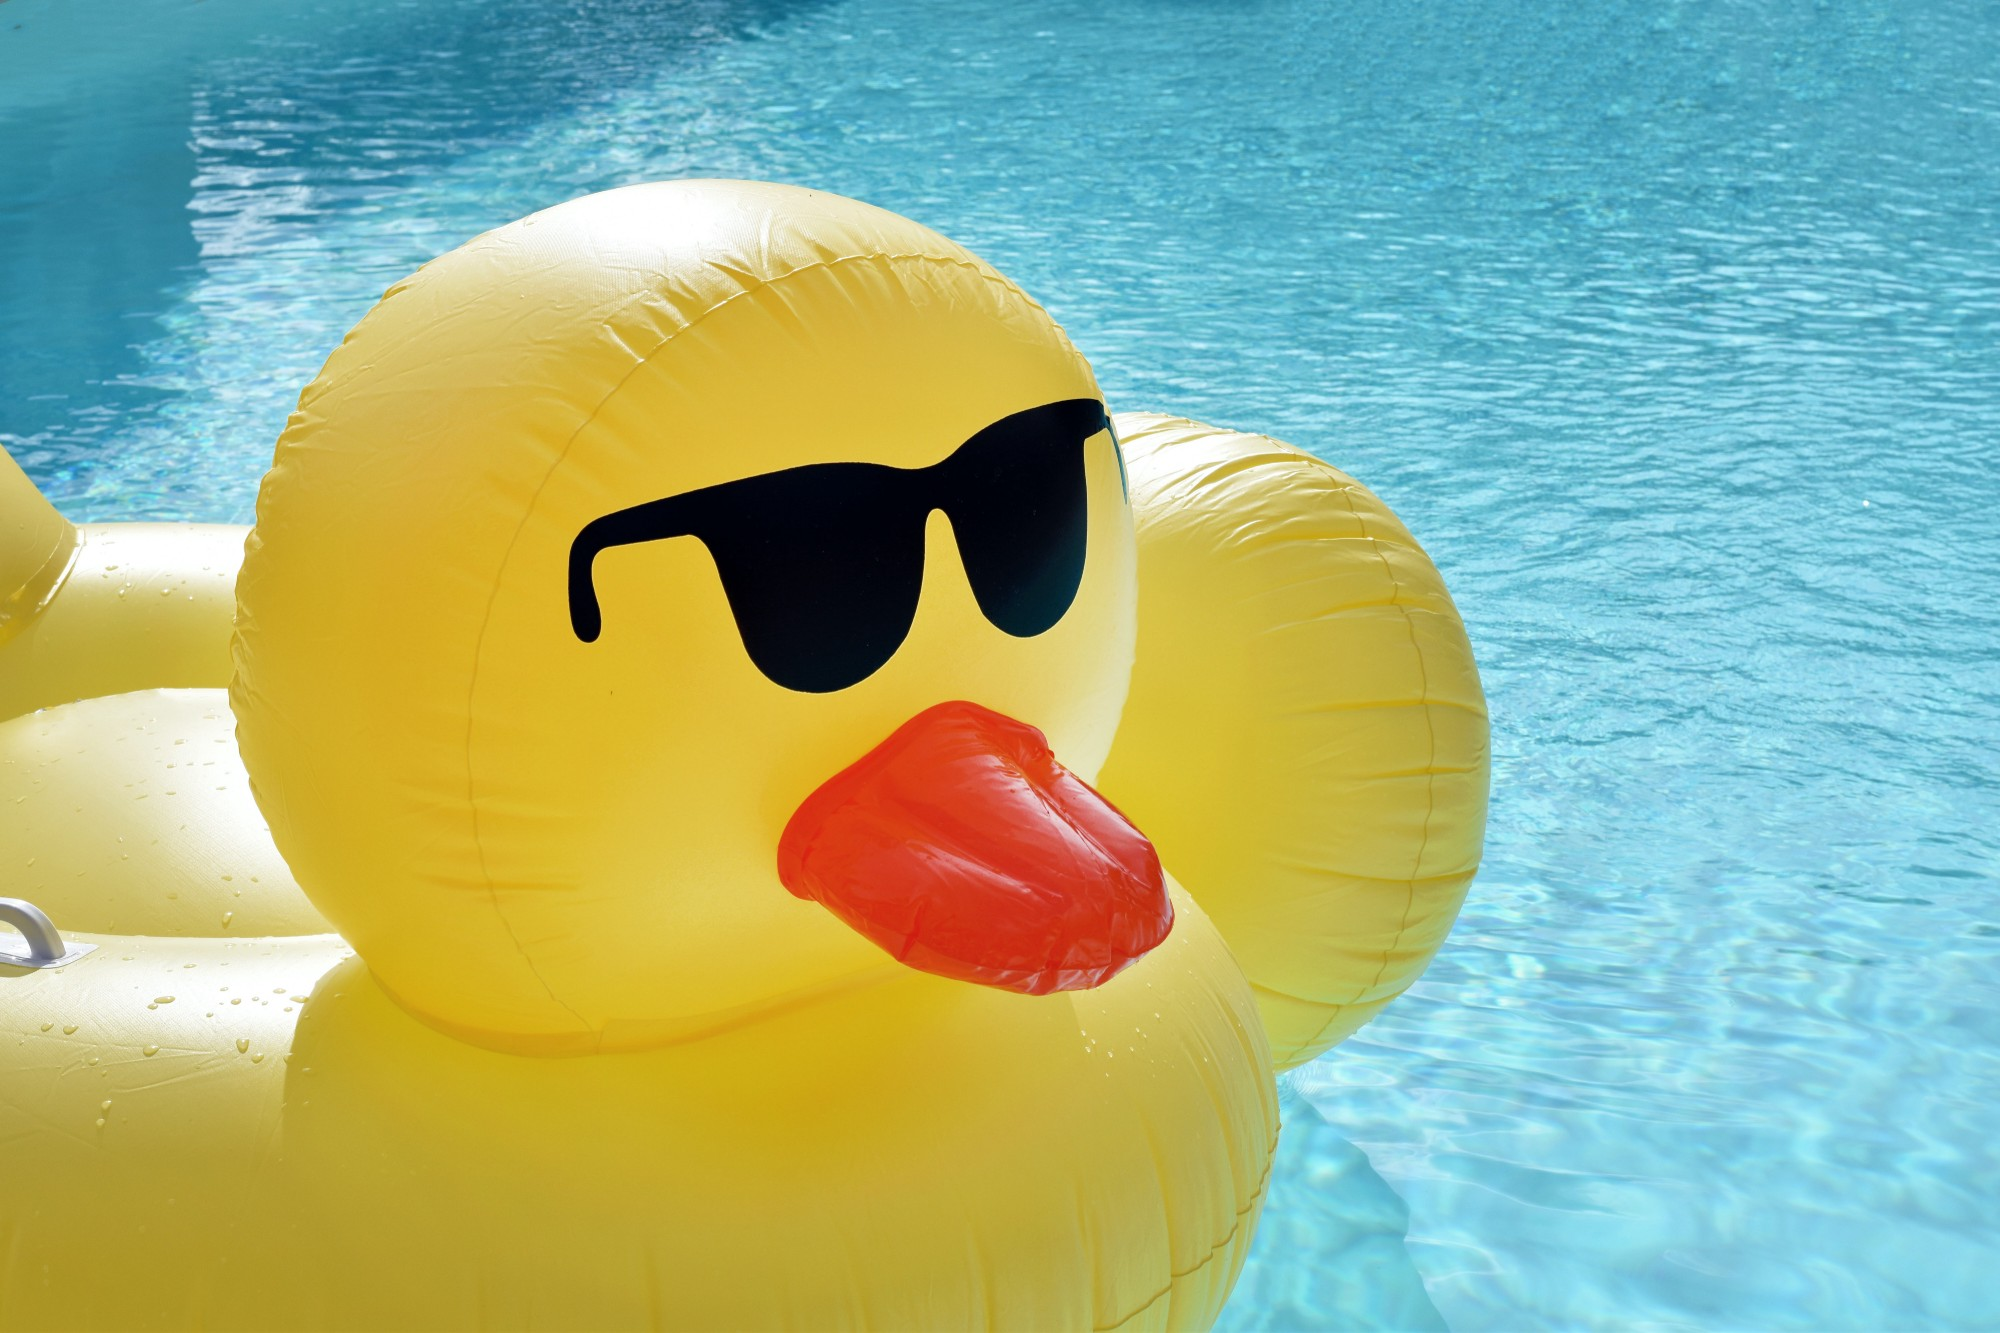 Large, yellow duck-shaped inflatable with red beak and black sunglasses sitting in a swimming pool.